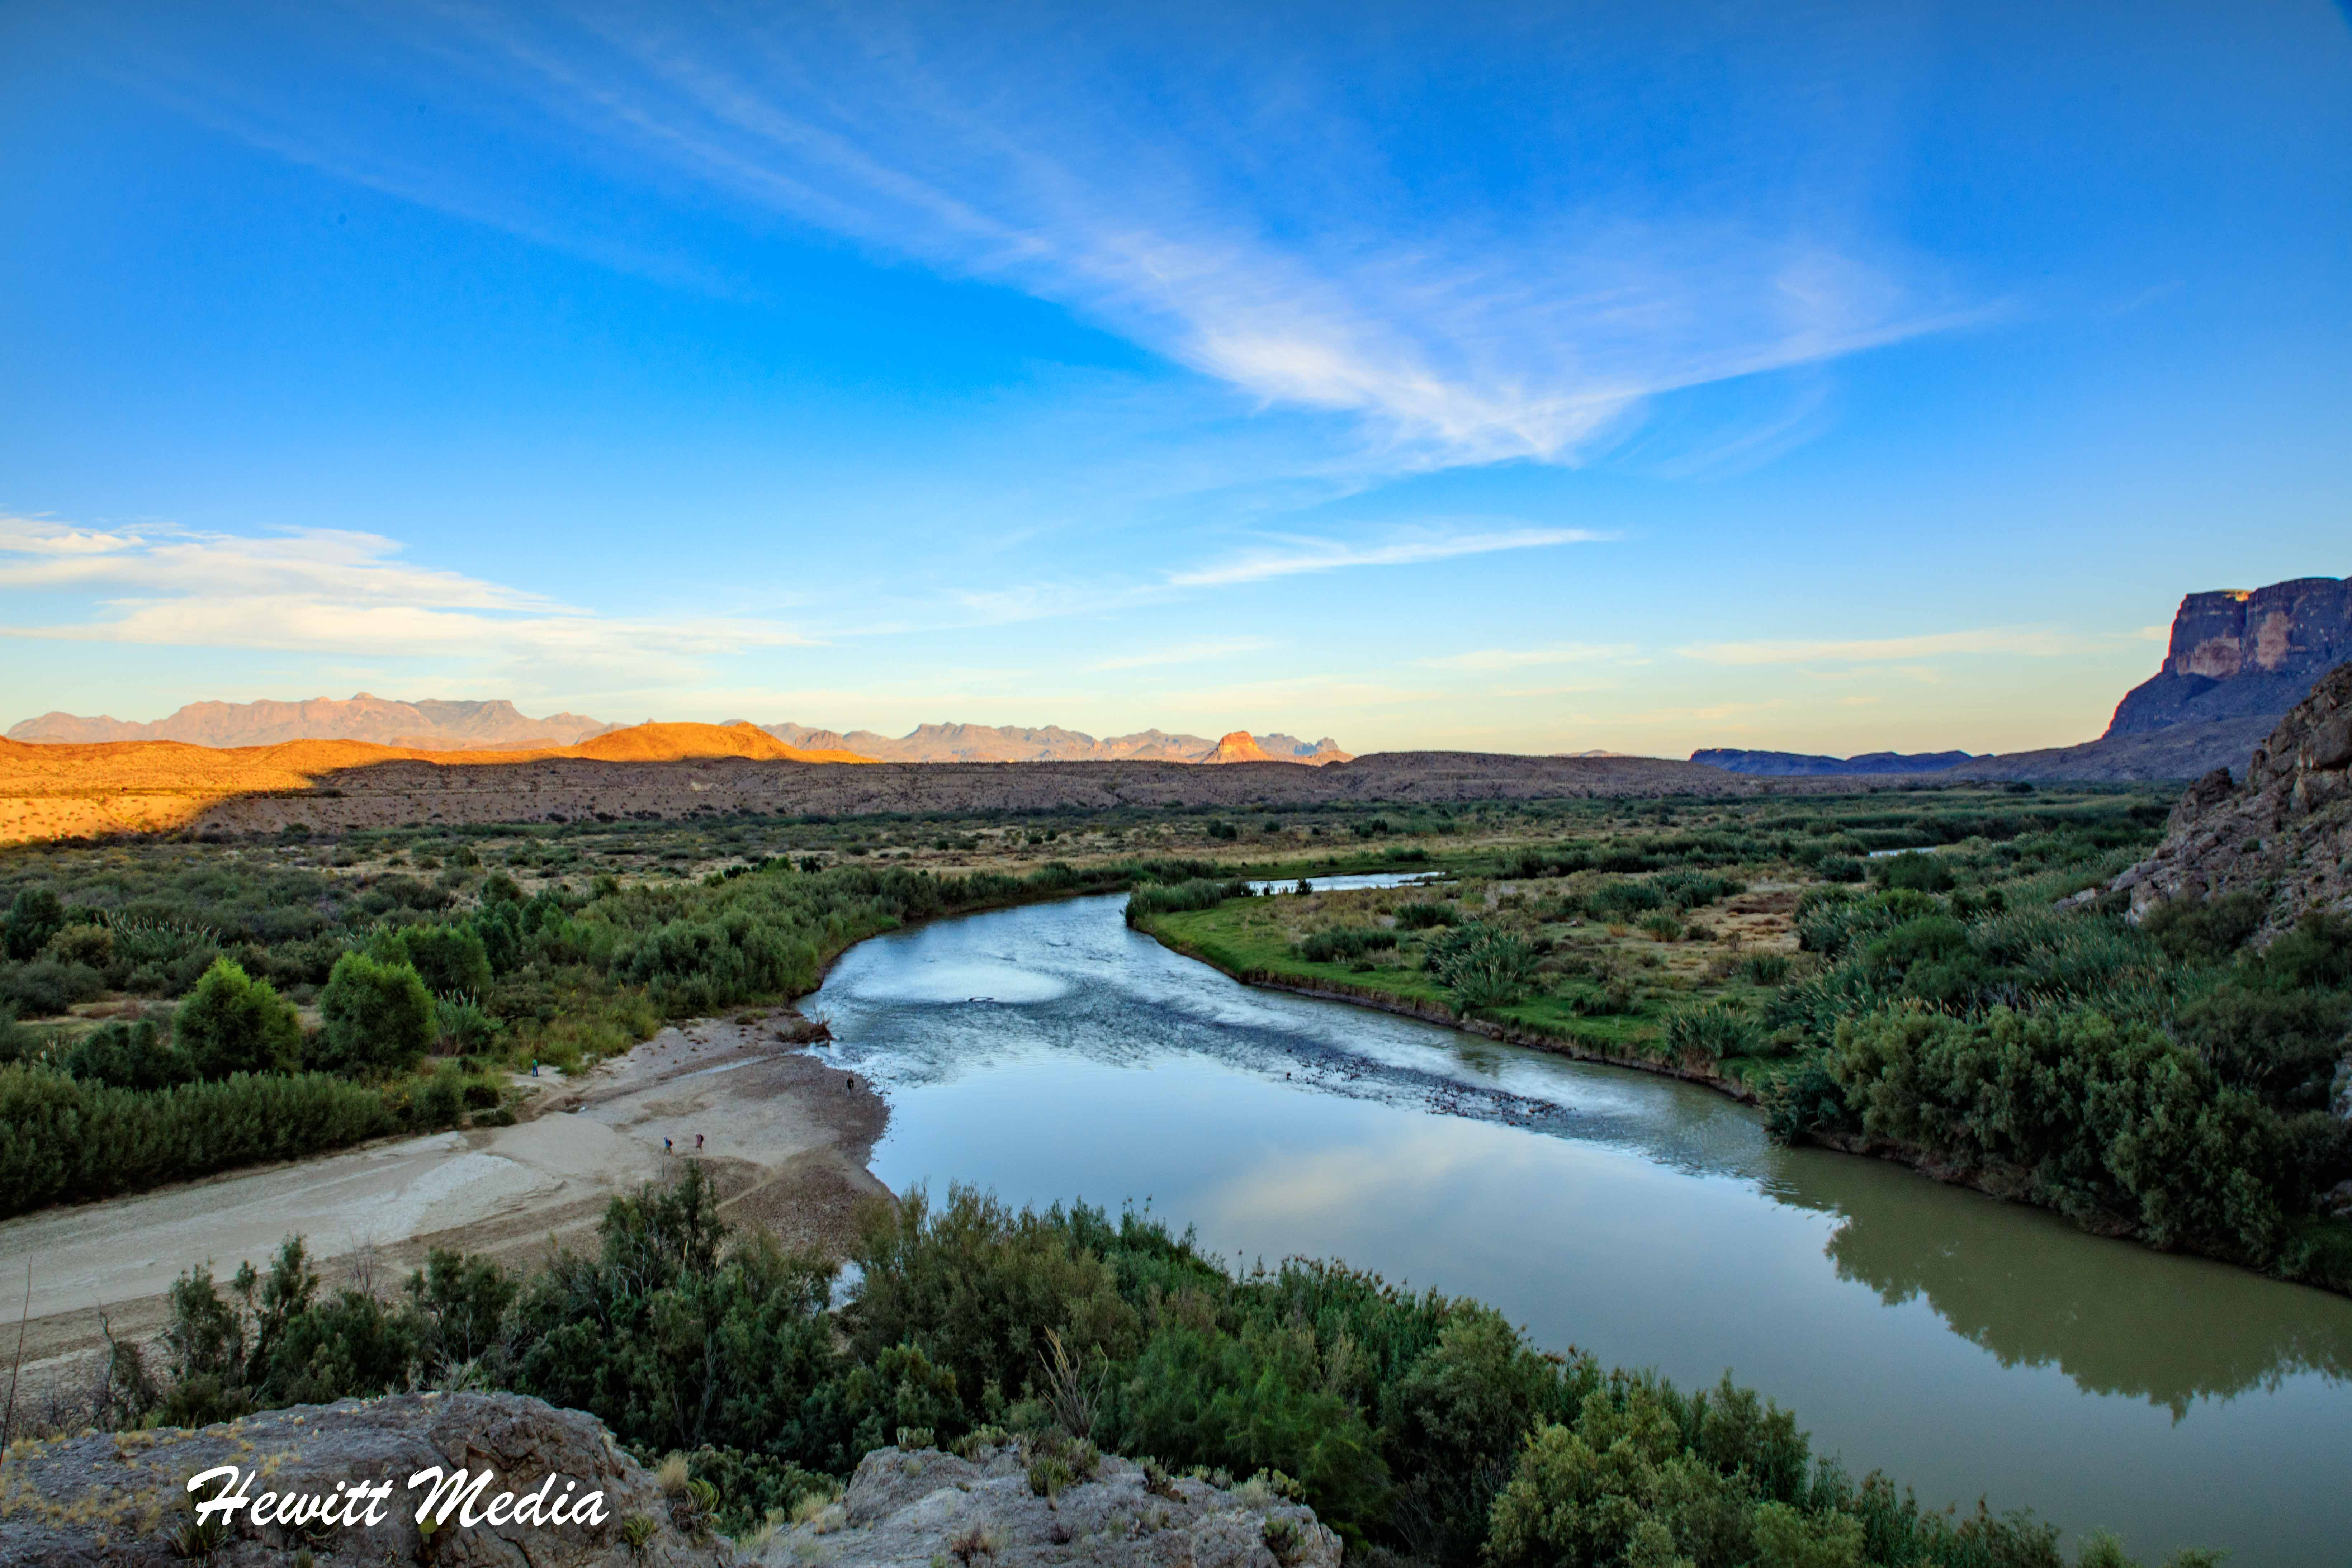 The Rio Grande River near Santa Elena Canyon